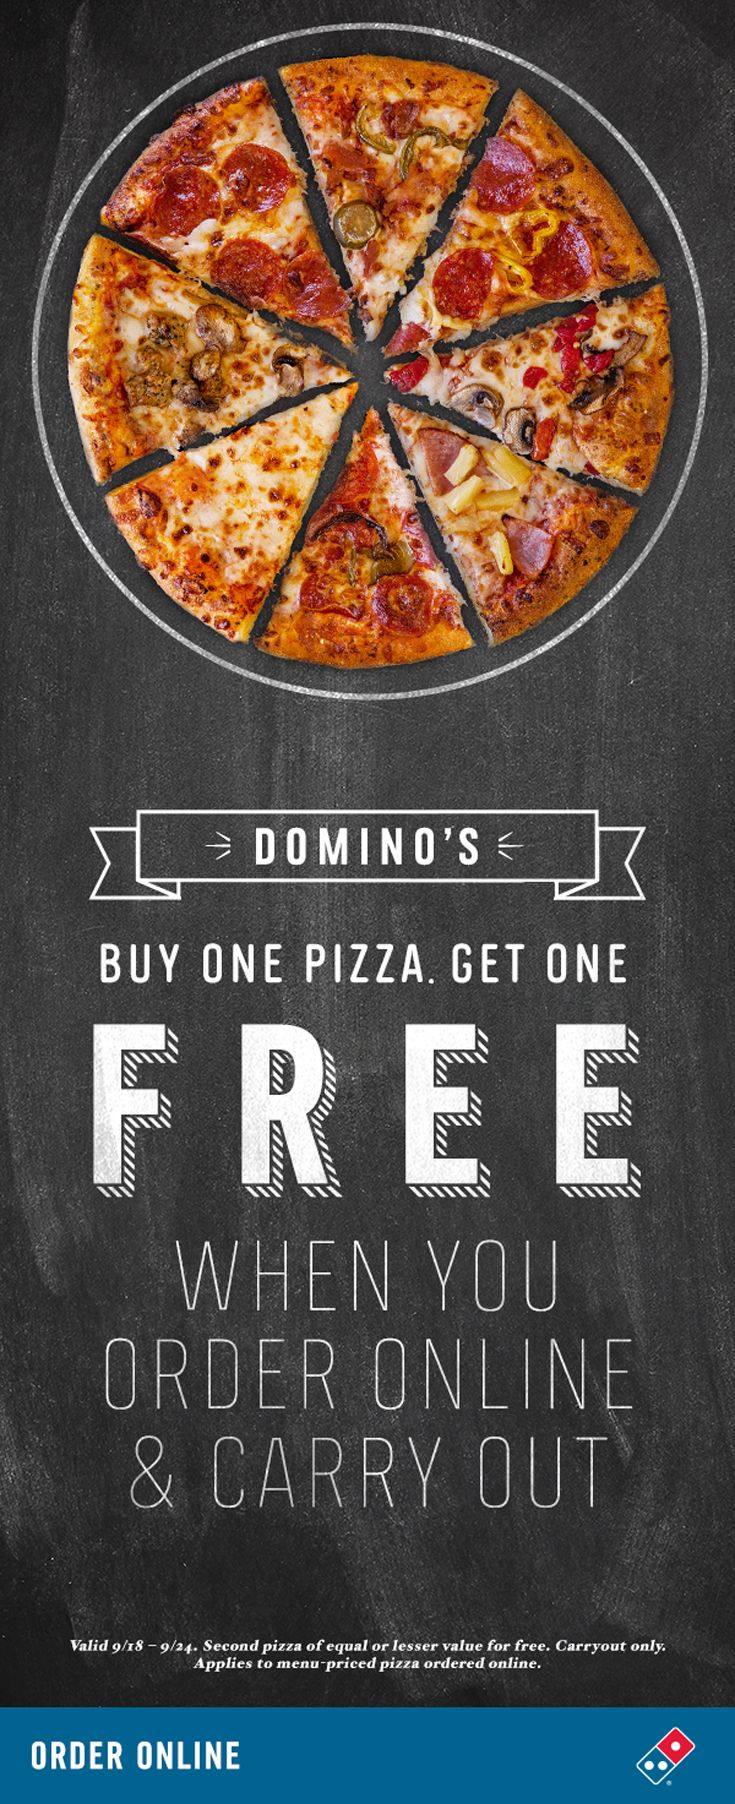 Dominos pizza online order - Order Pizza Pasta Online For Carryout Delivery Domino S Pizza